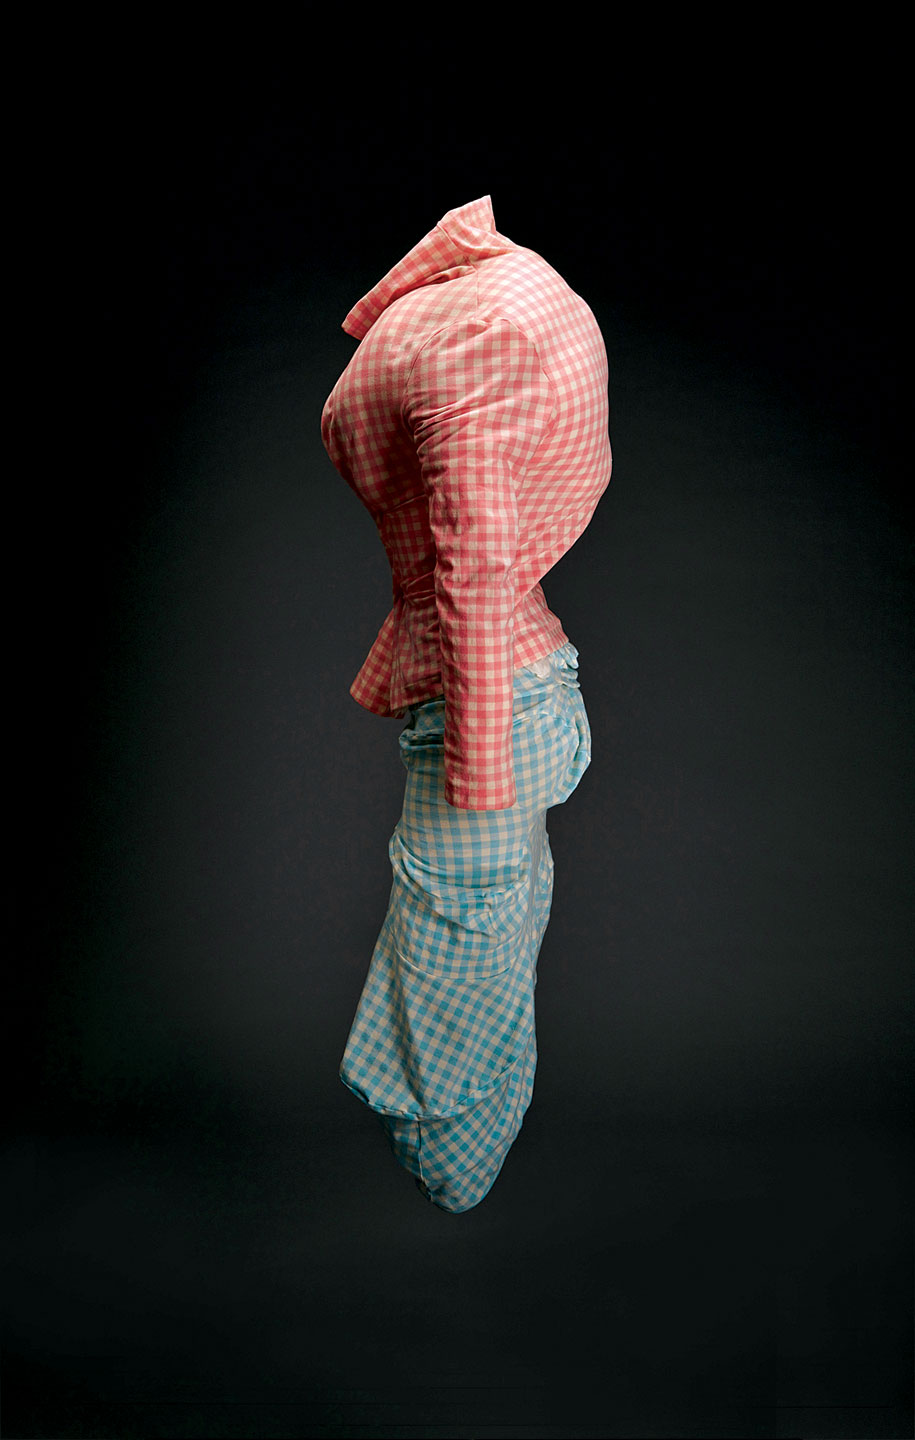 JACKET AND SKIRT by Comme des Garçons of nylon/polyurethane stretch gingham with padding, Spring/Summer 1997 collection: Body Meets Dress, Dress Meets Body.